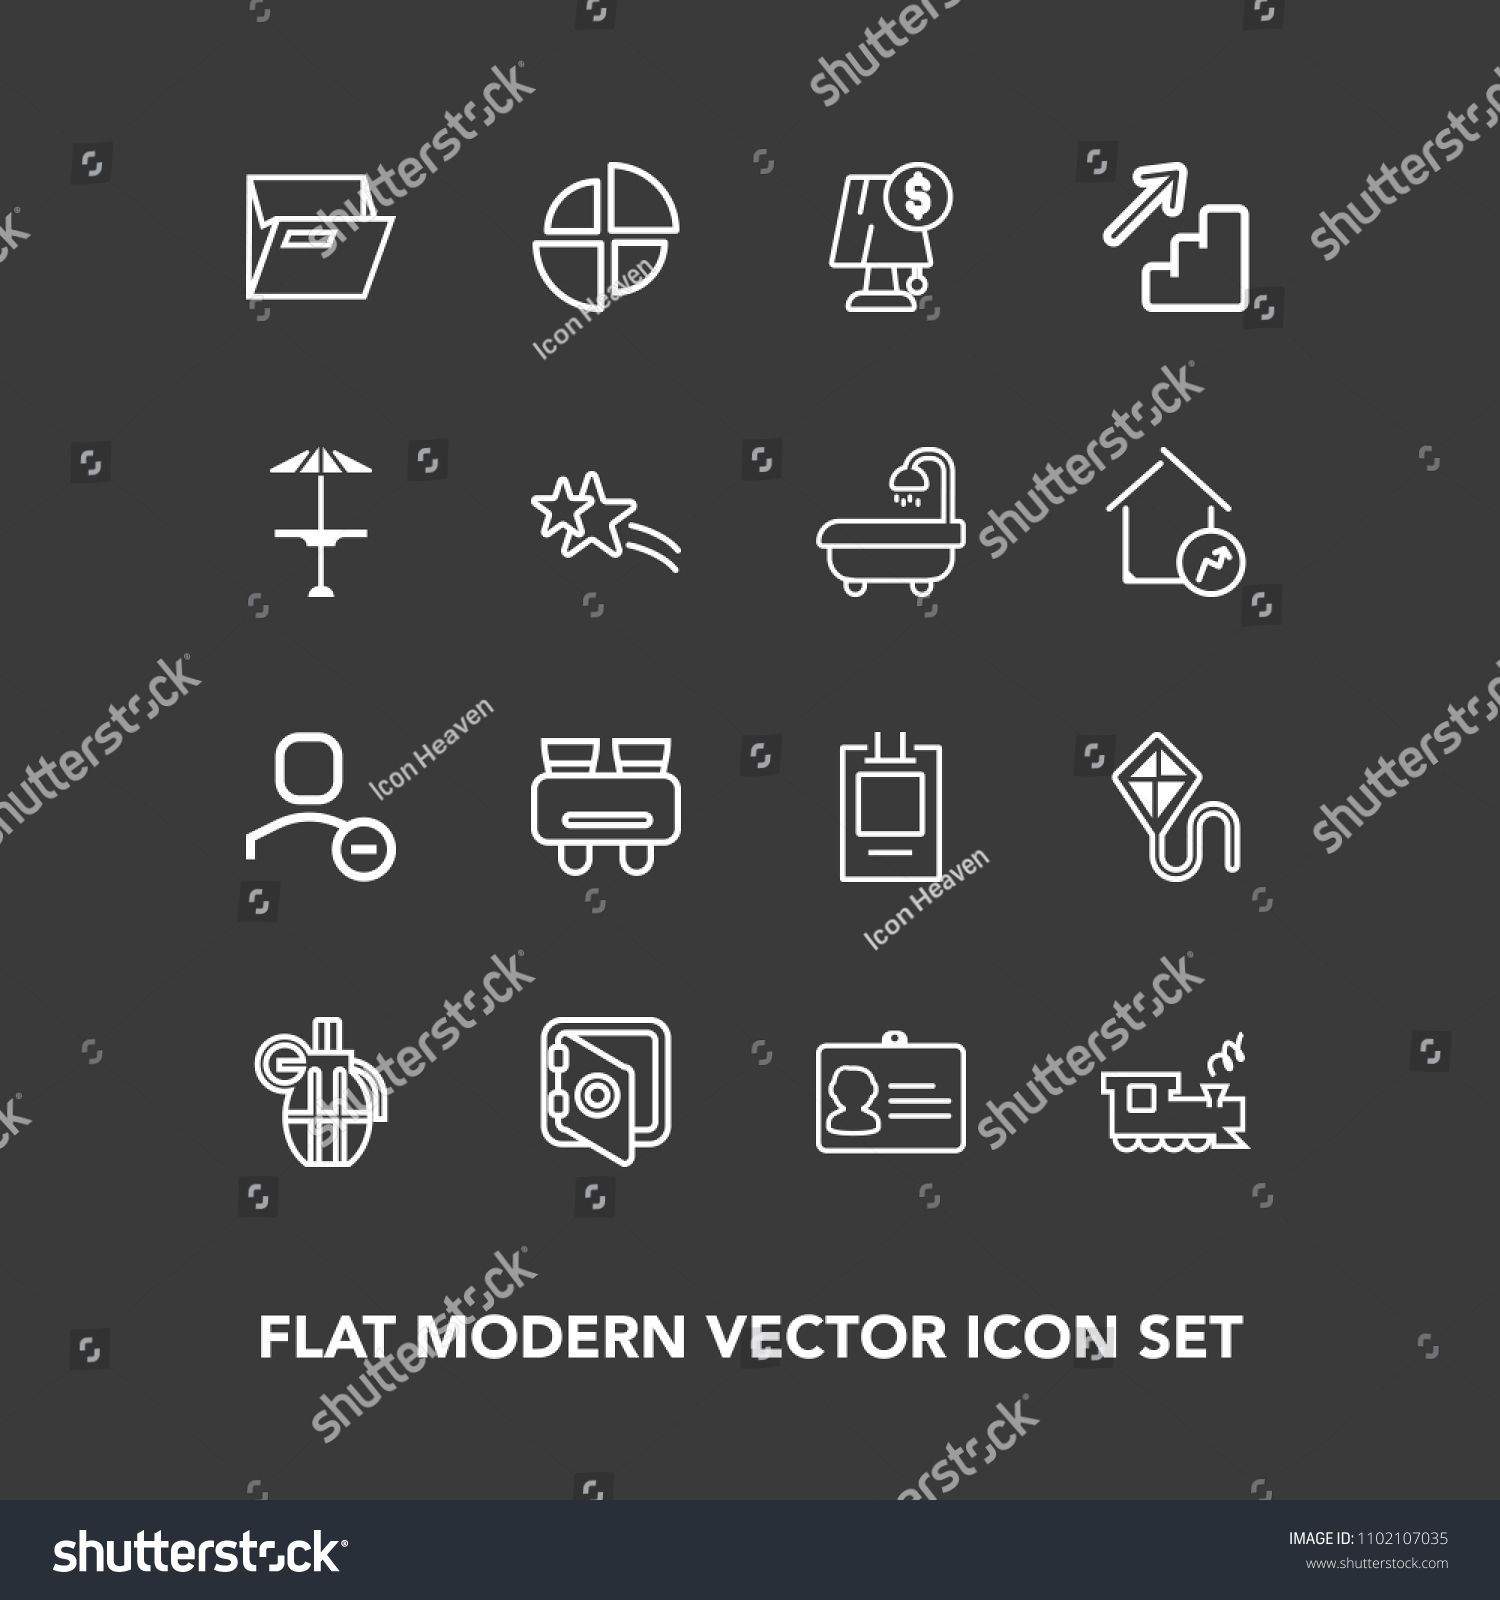 Lionel Trains Basic Layout Wiring Diagrams Data Base Schematics War Train Schematic Expert Diagram Rh Atcobennettrecoveries Com On Transformer For Modern Simple Vector Icon Set Stock